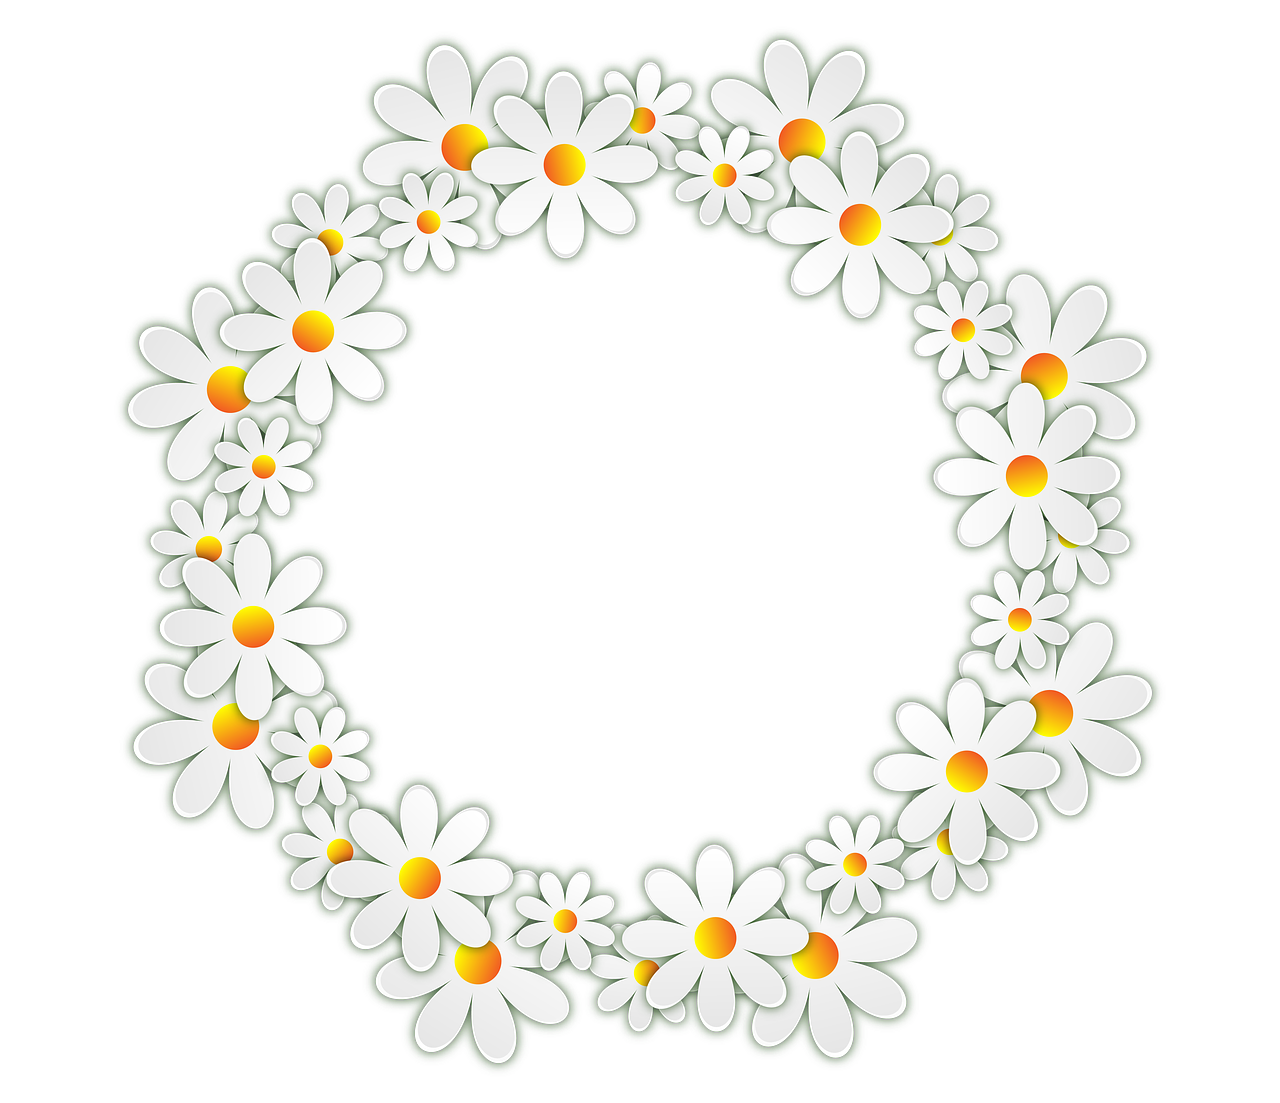 Ladybug clipart daisy. Vacation flowers photo frame